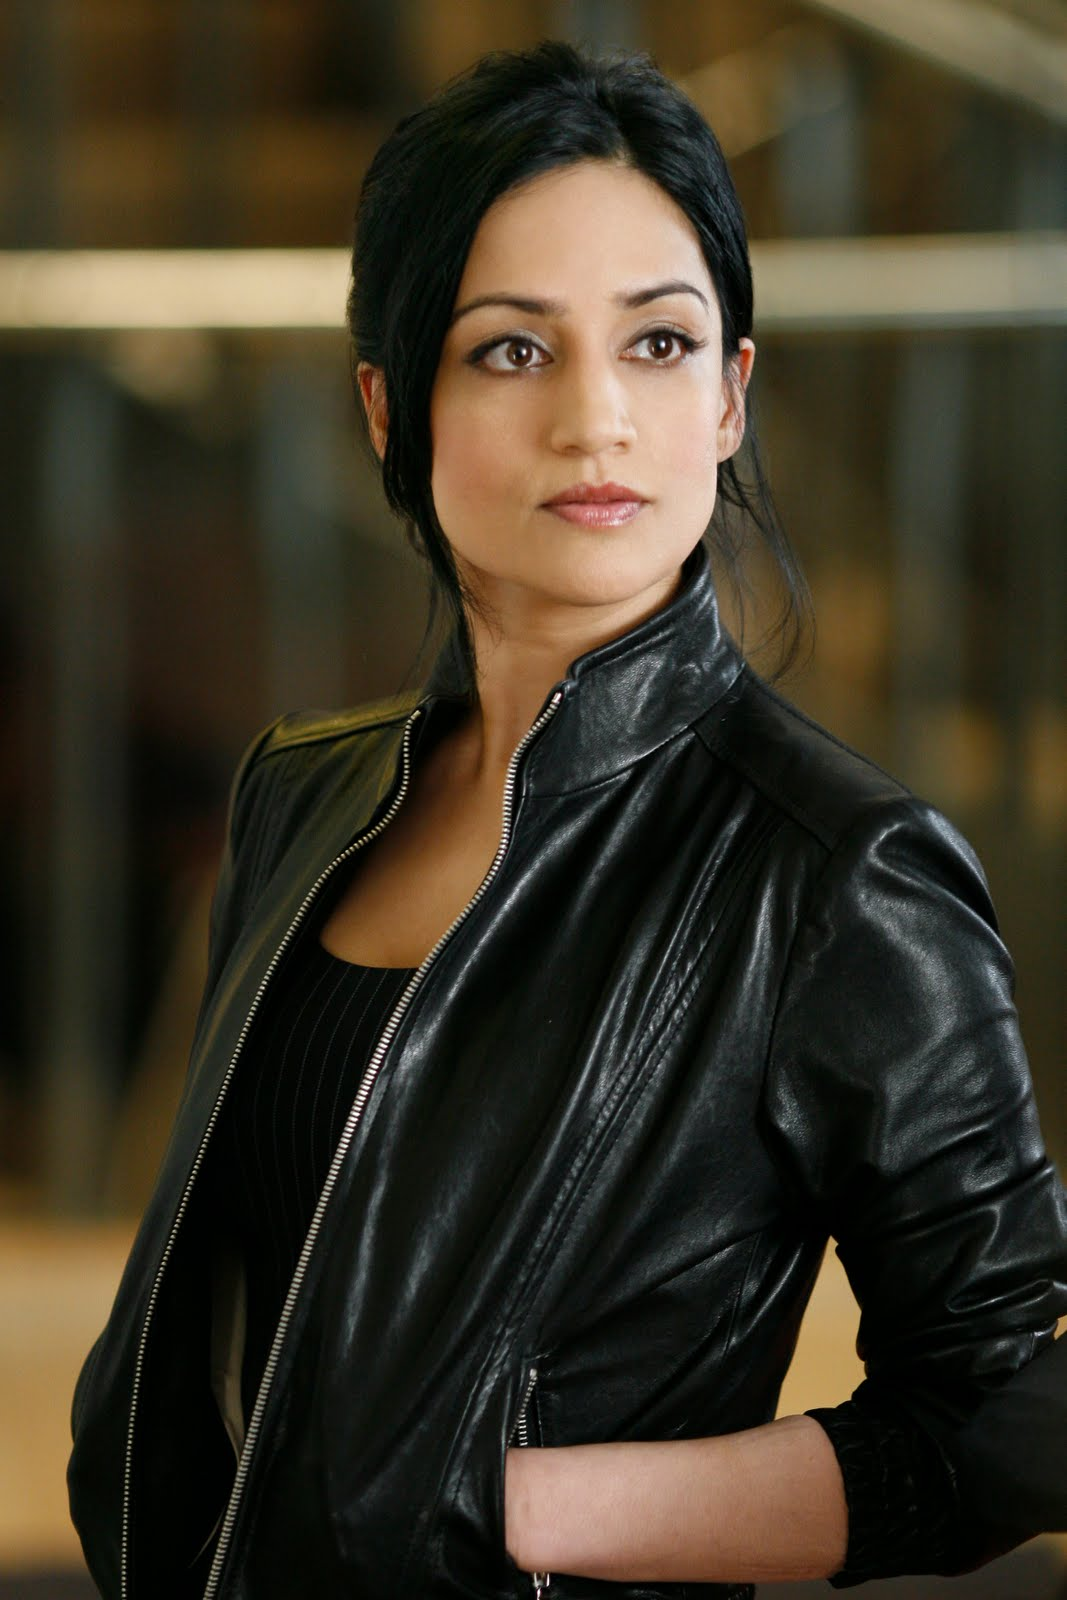 Archie Panjabi / Credit: www.thevisibilityproject.com